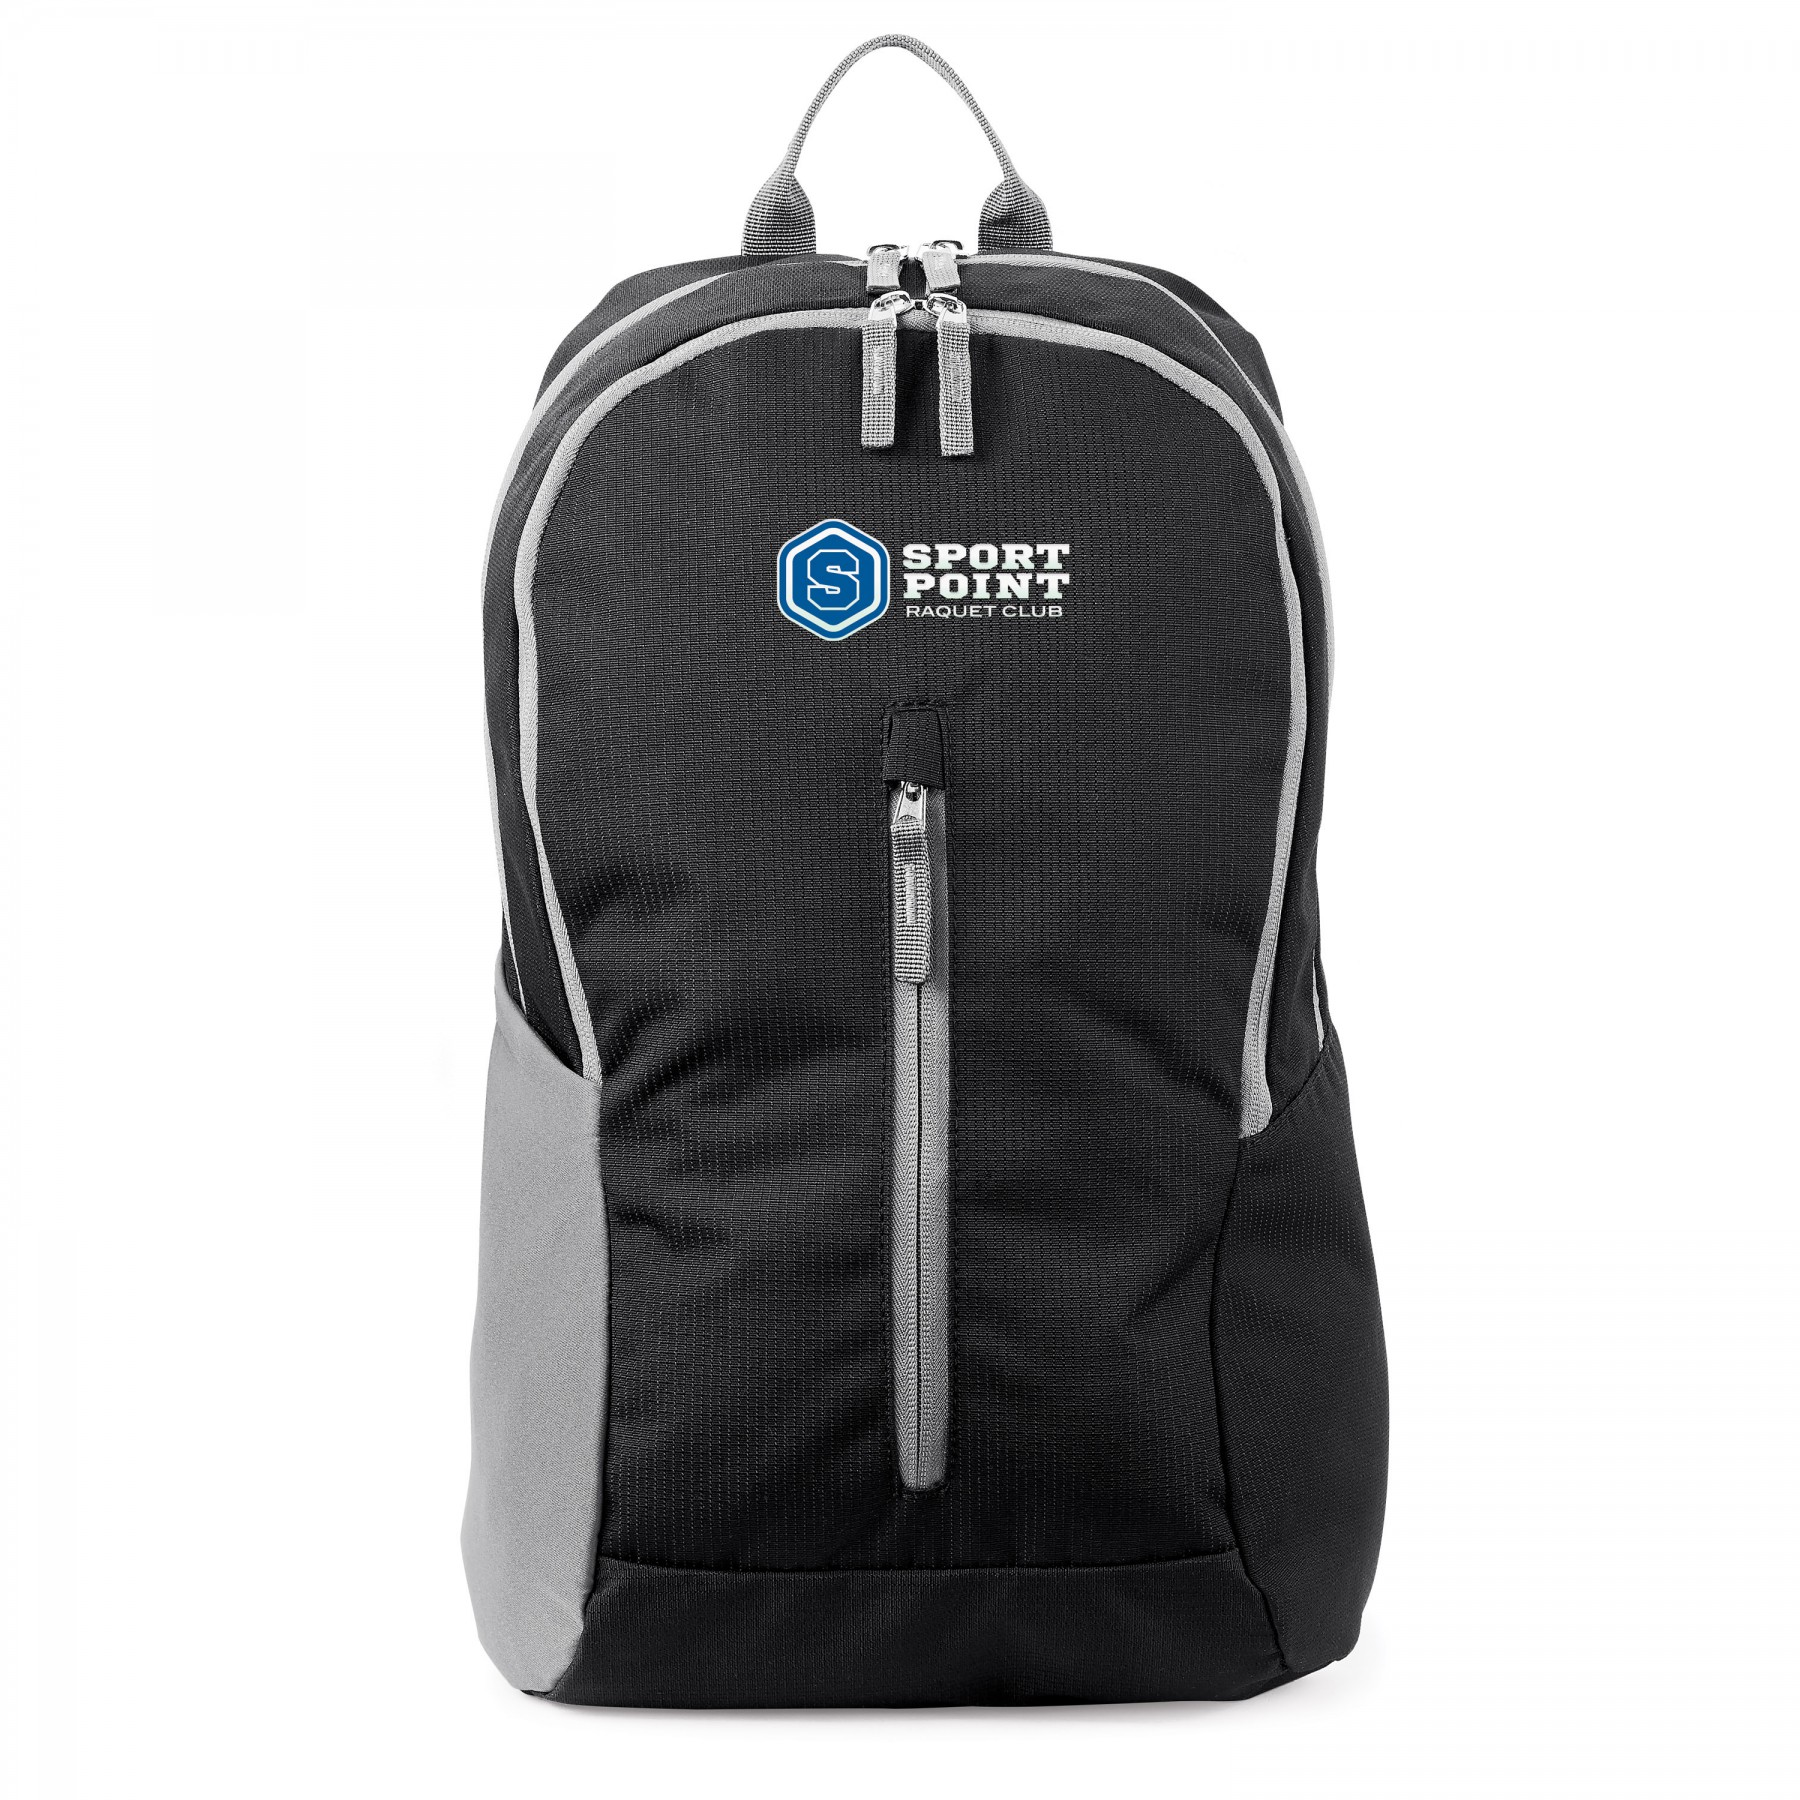 Beast Gear Backpack, BG108, Full Colour Imprint